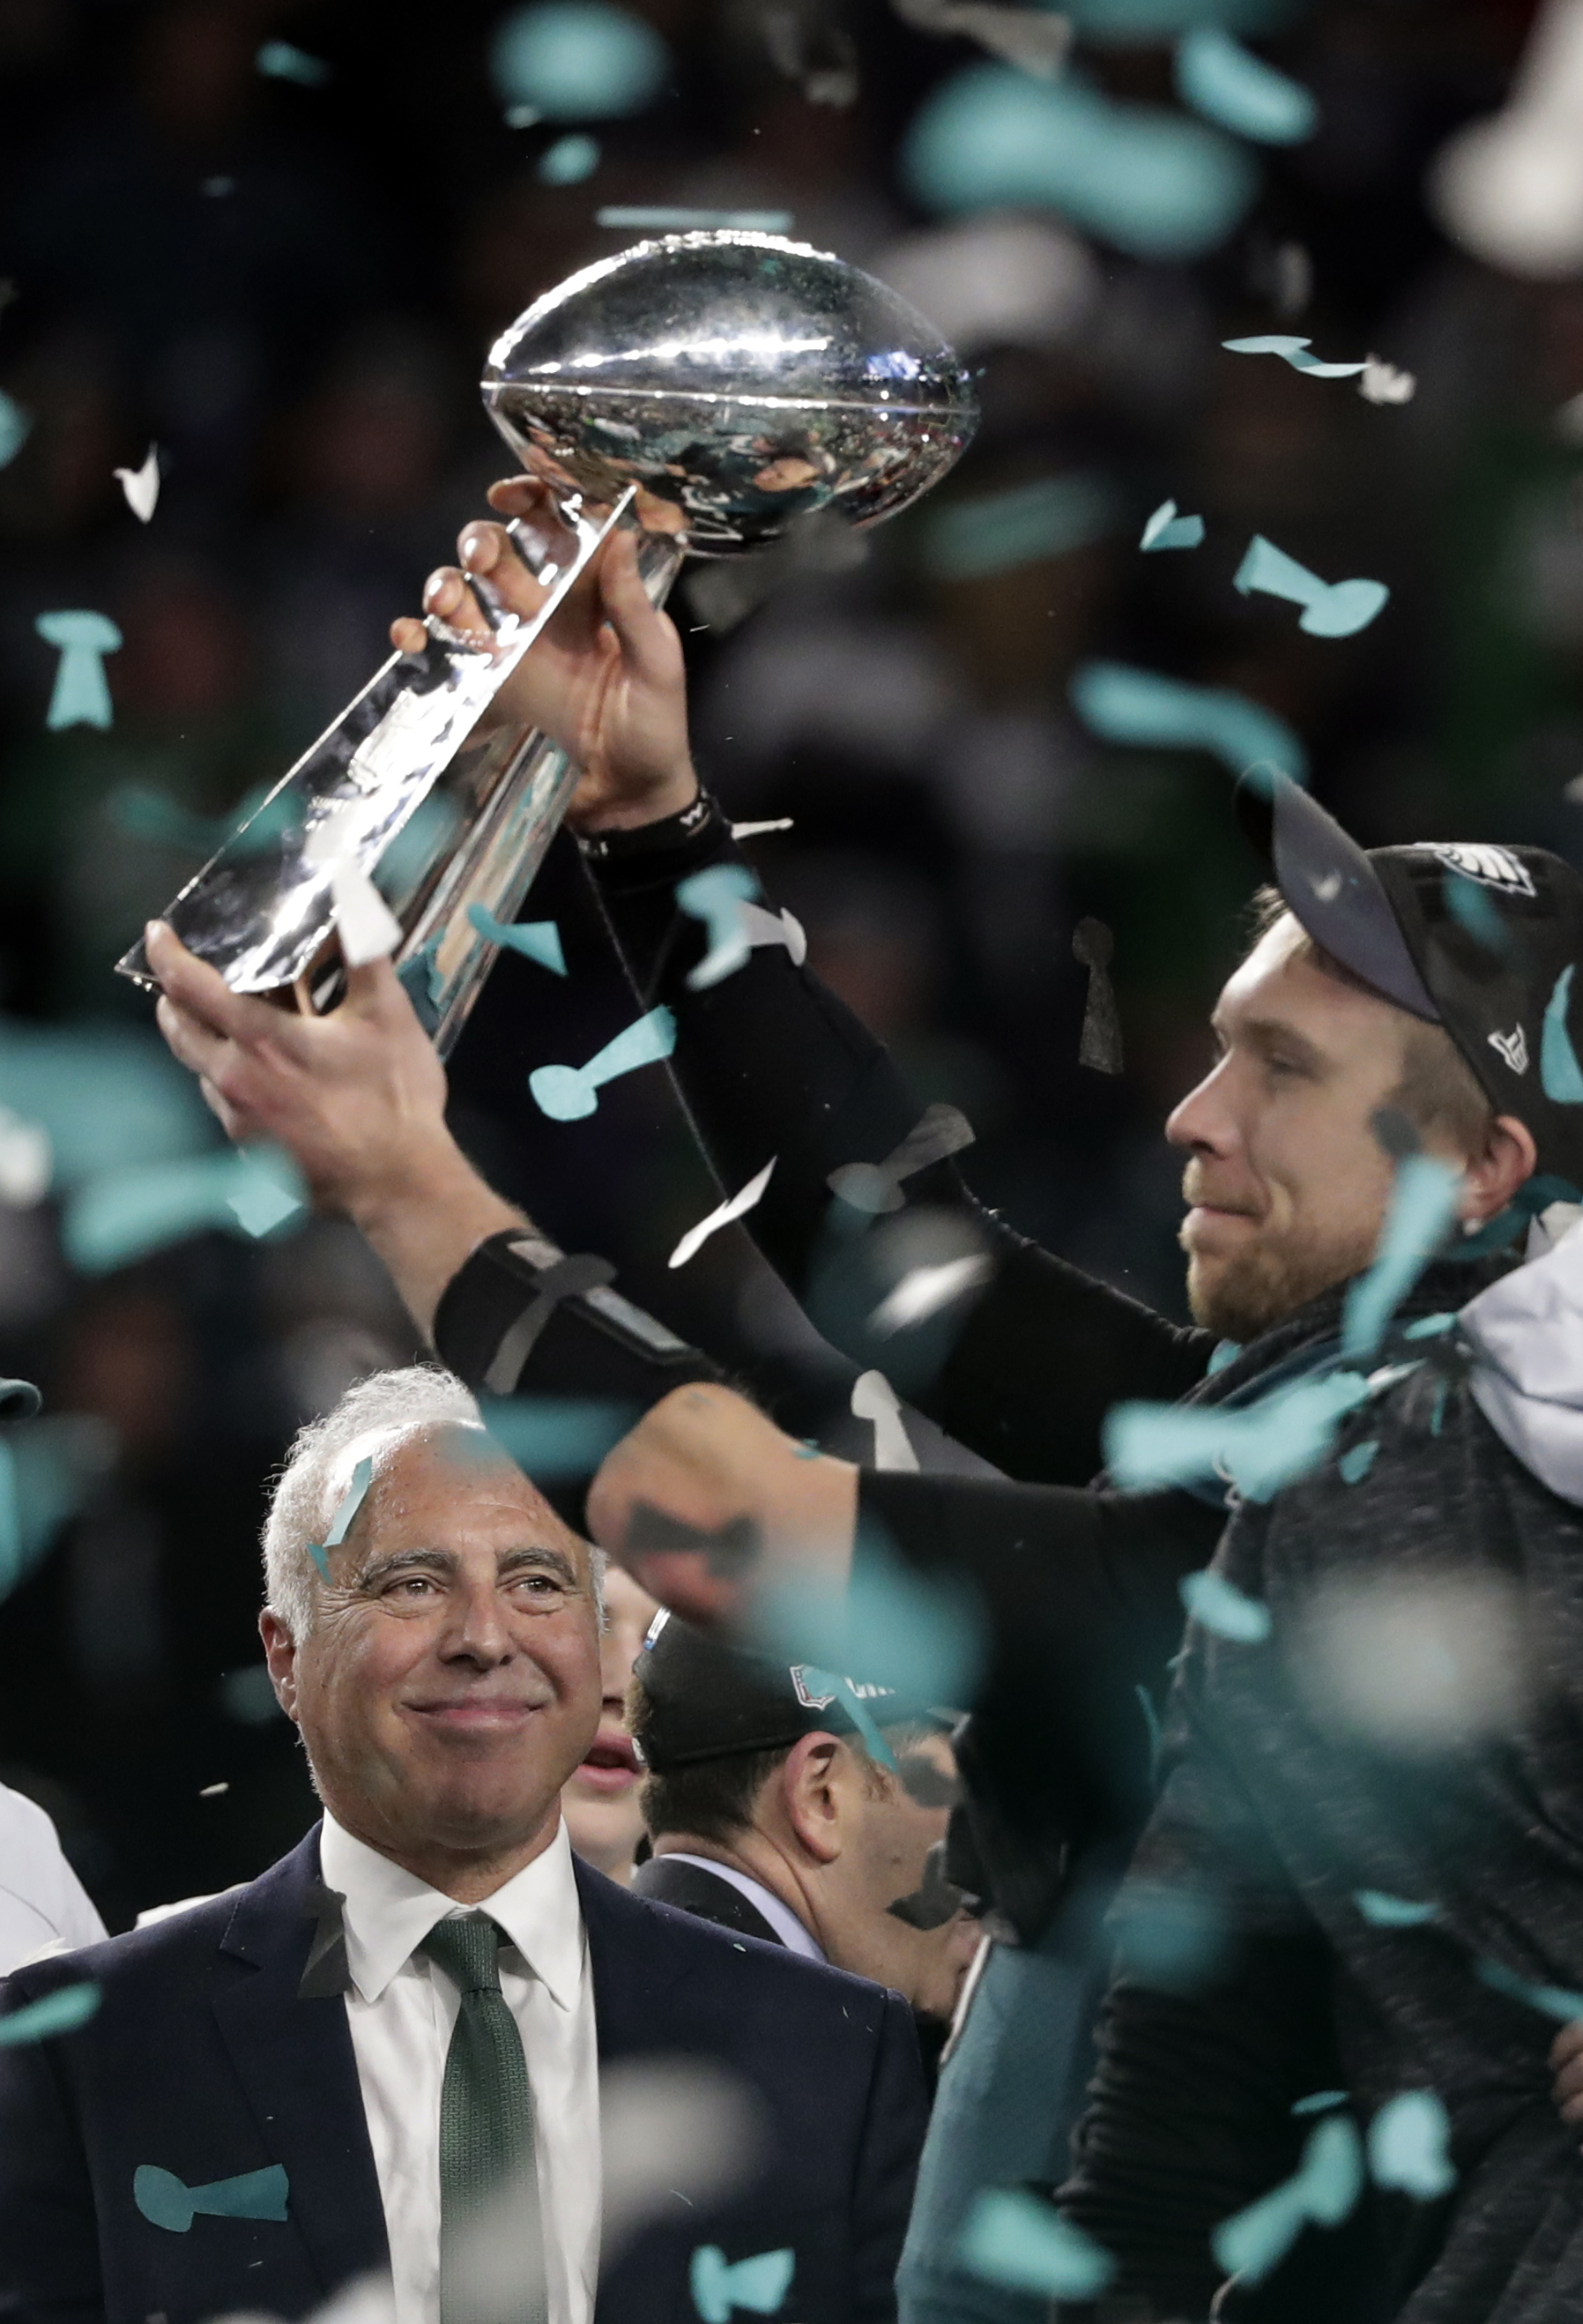 <div class='meta'><div class='origin-logo' data-origin='AP'></div><span class='caption-text' data-credit='AP Photo/Tony Gutierrez'>Philadelphia Eagles quarterback Nick Foles hoists the Vincent Lombardi trophy as owner Jeffrey Lurie, smiles after winning the NFL Super Bowl 52 football game.</span></div>